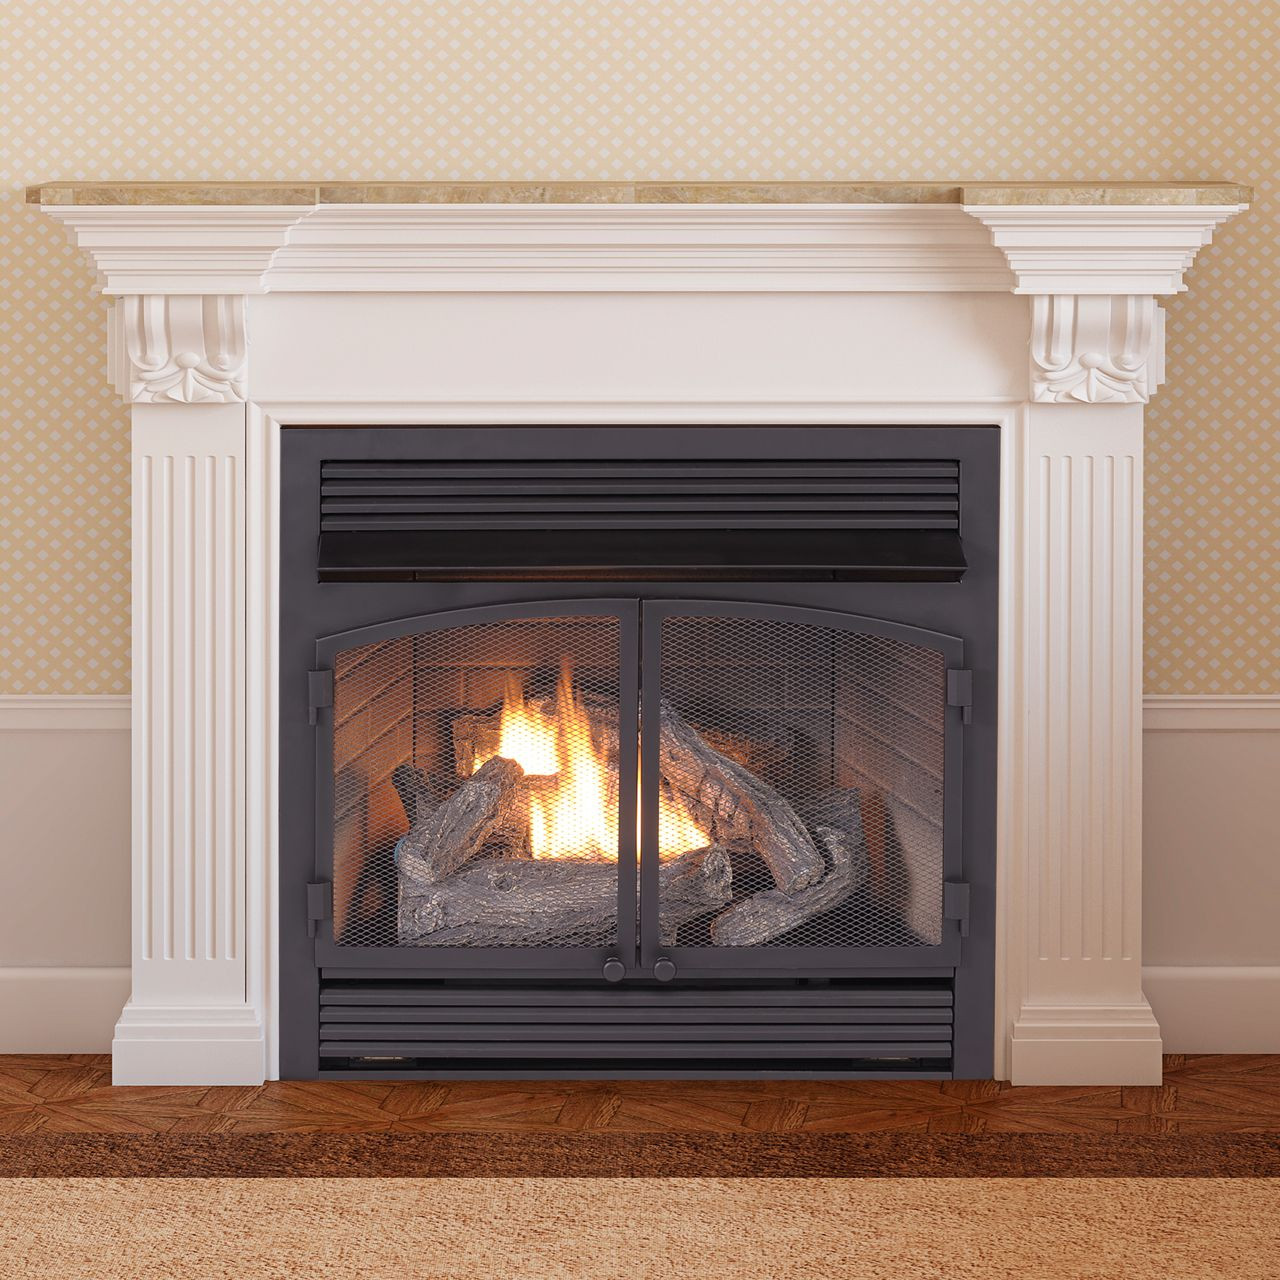 ventless gas fireplaces fireplace inserts factory buys direct rh factorybuysdirect com gas fireplace designs photos gas fireplace insert photos